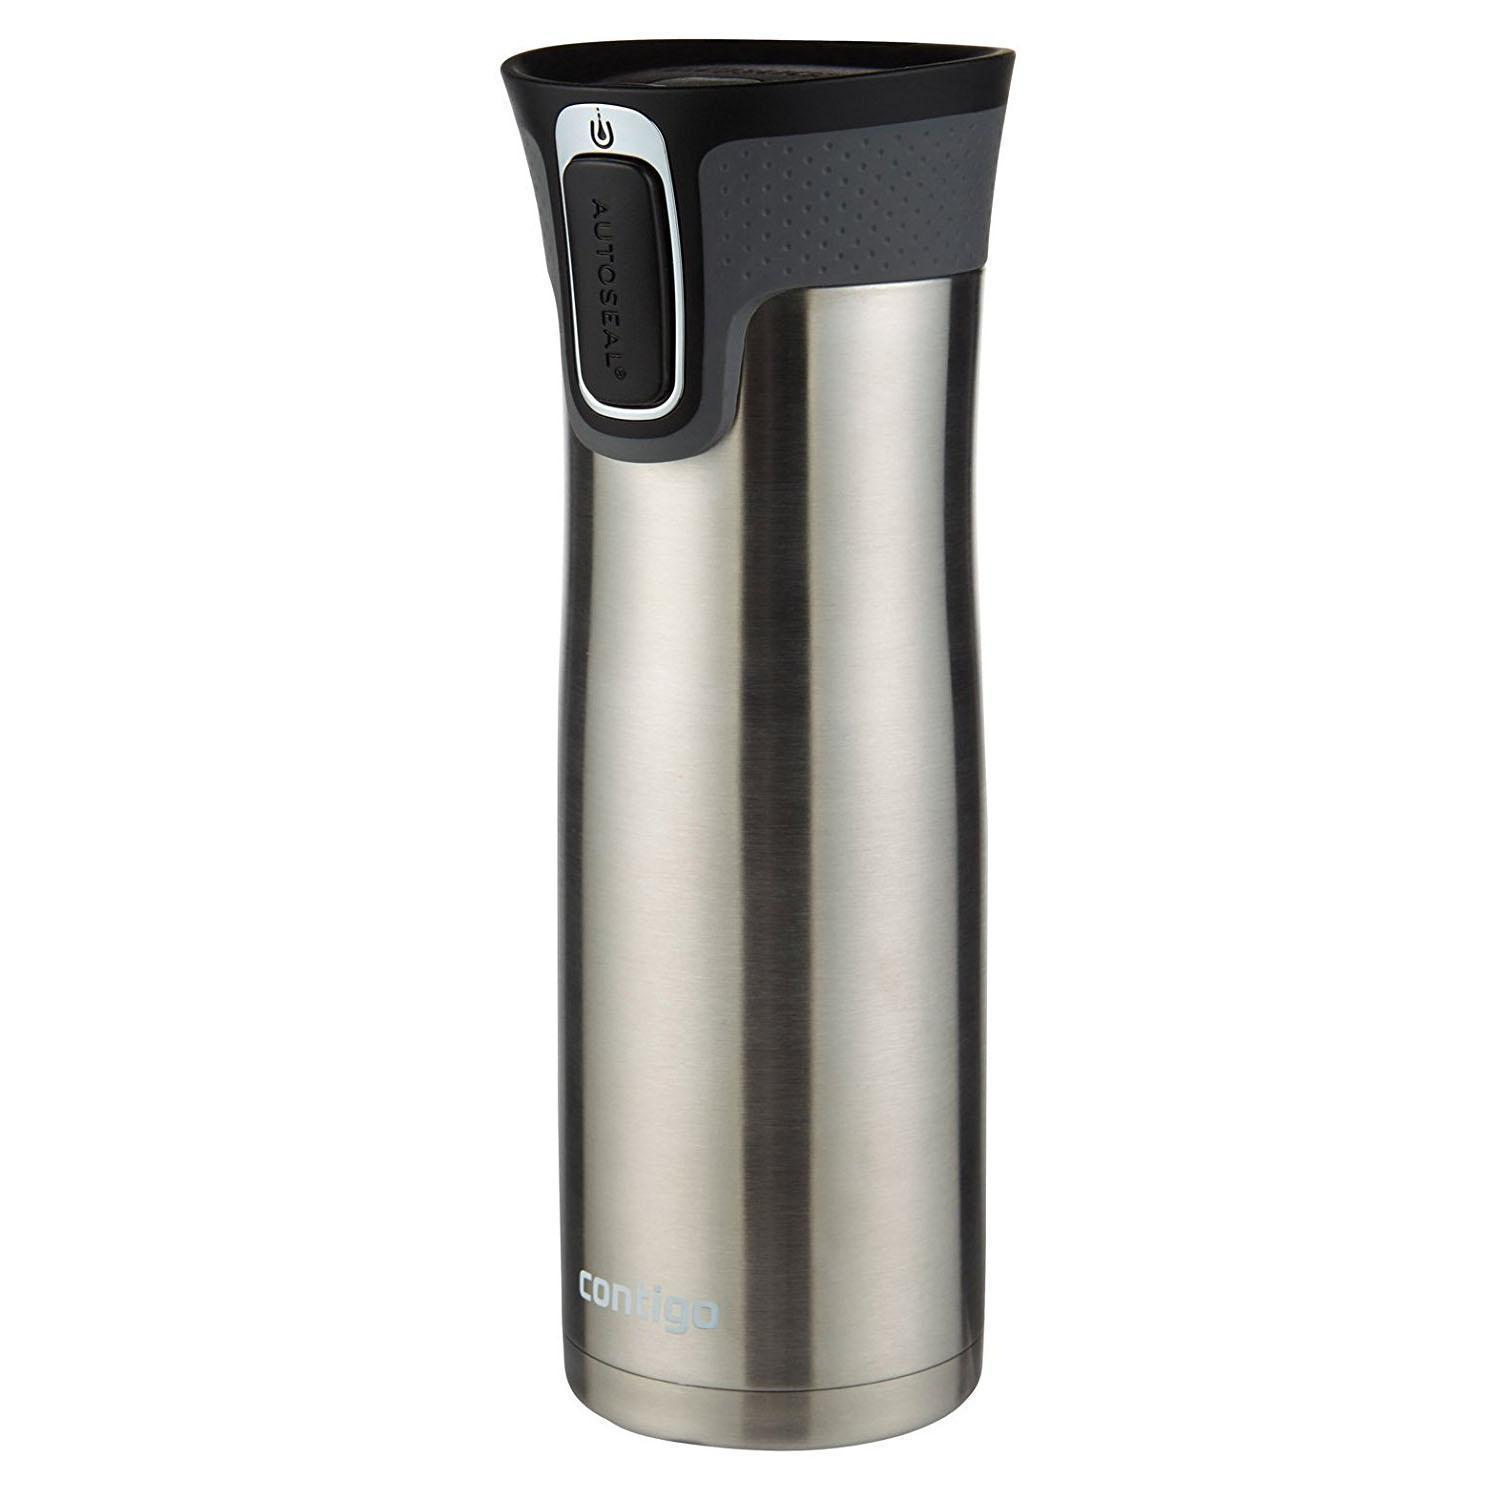 Contigo 16oz West Loop Thermal Mug